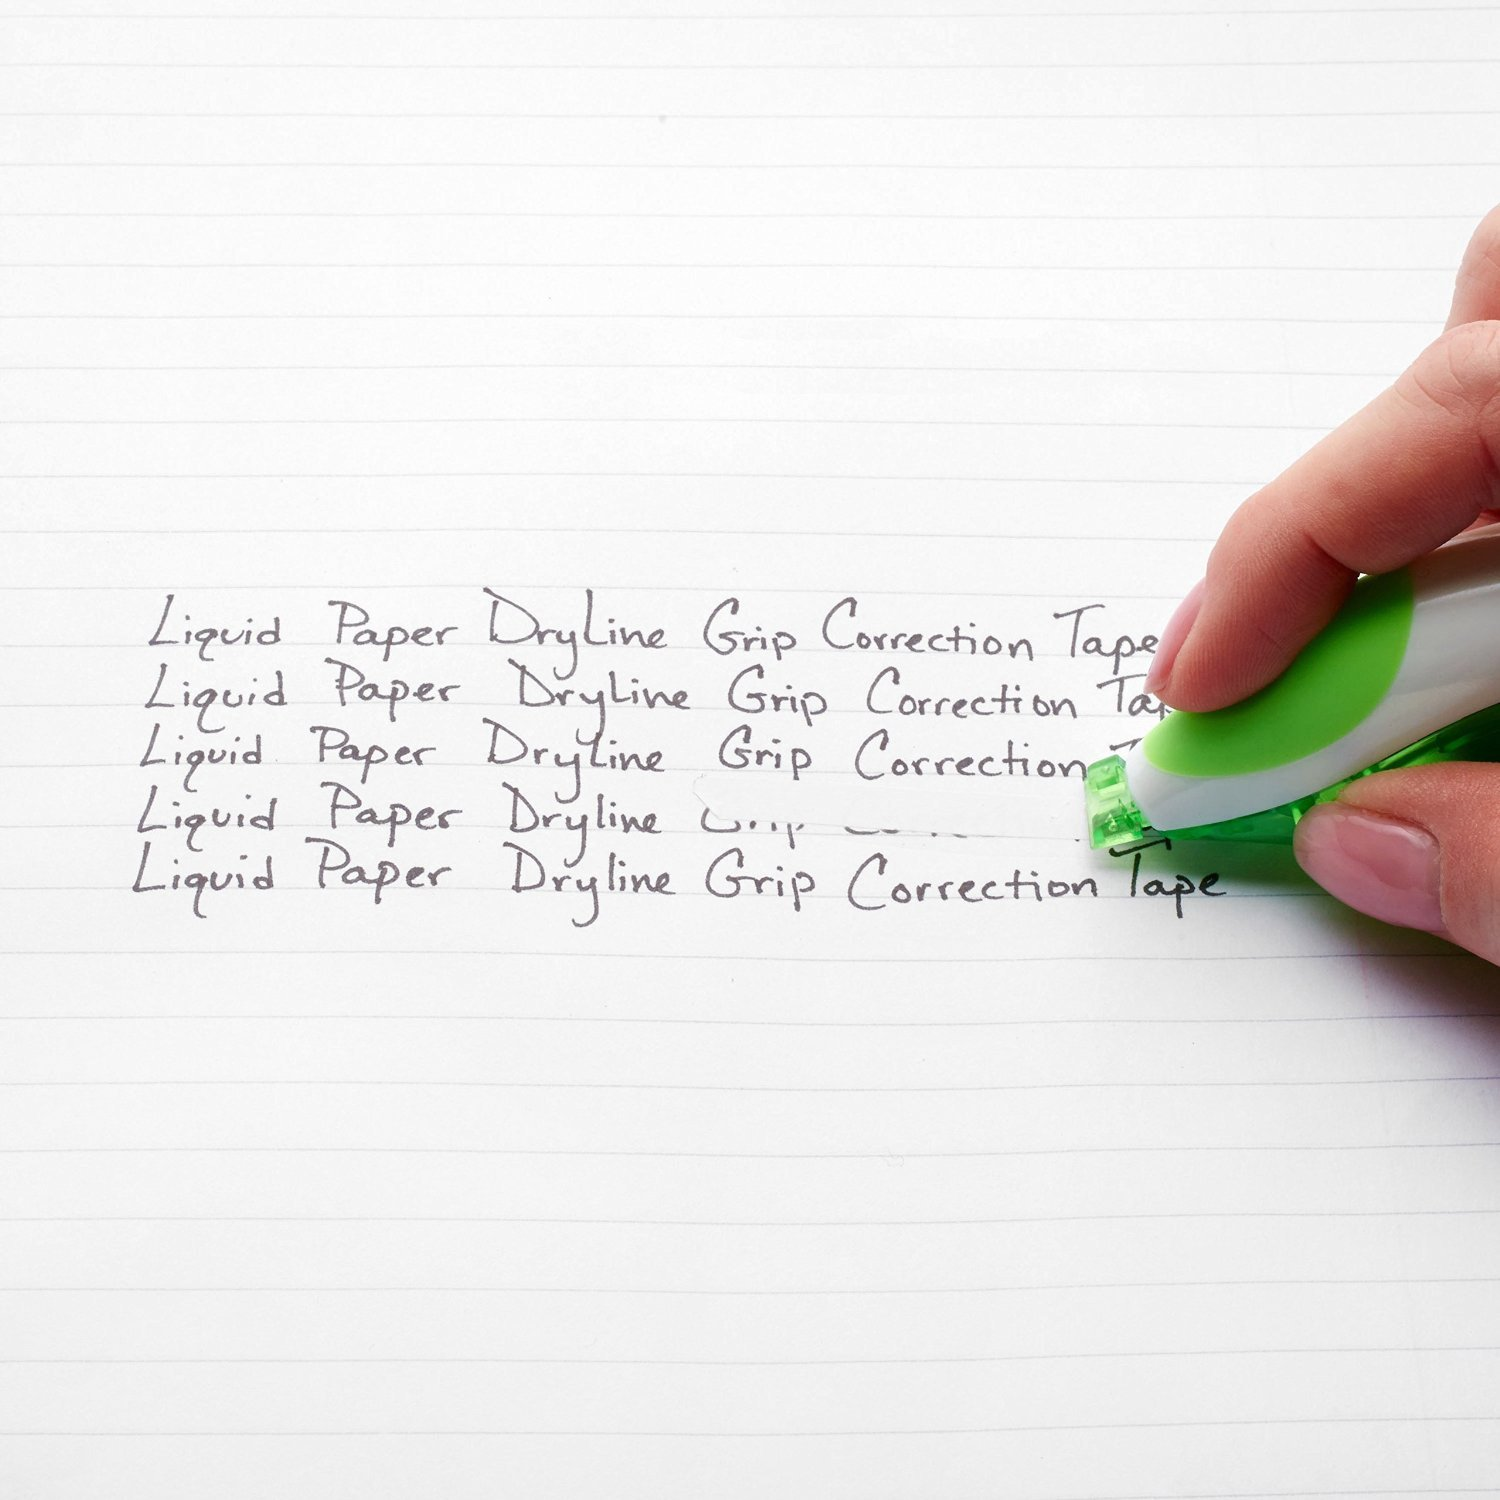 PaperMate Medium Point Liquid Paper DryLine Grip Correction Tape, Assorted Colours, Box of 12 by Paper Mate (Image #7)